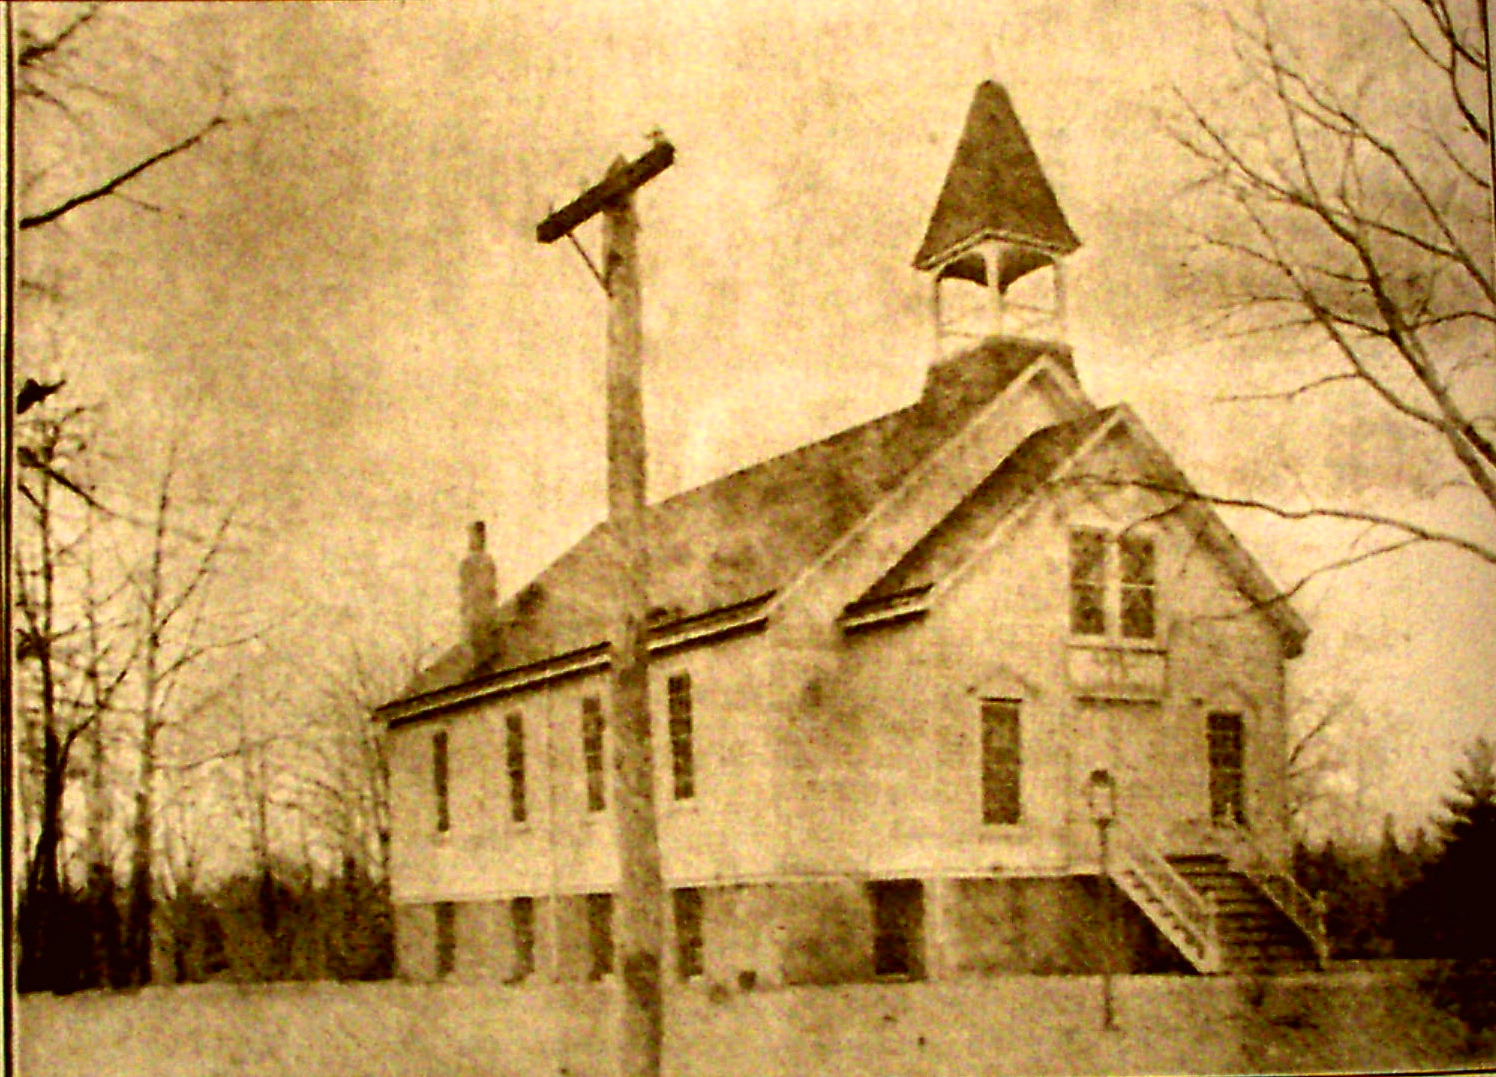 2-*ROSSVILE A.M.E. ZION CHURCH IN 1908, THIS EARLIEST KNOWN VIEW OF THE CHURCH SHOWS ITS BEEL TOWER IN STATEN ISLAND, NEW YORK (c. LOIS AUGUSTUS HENRY MOSLEY)